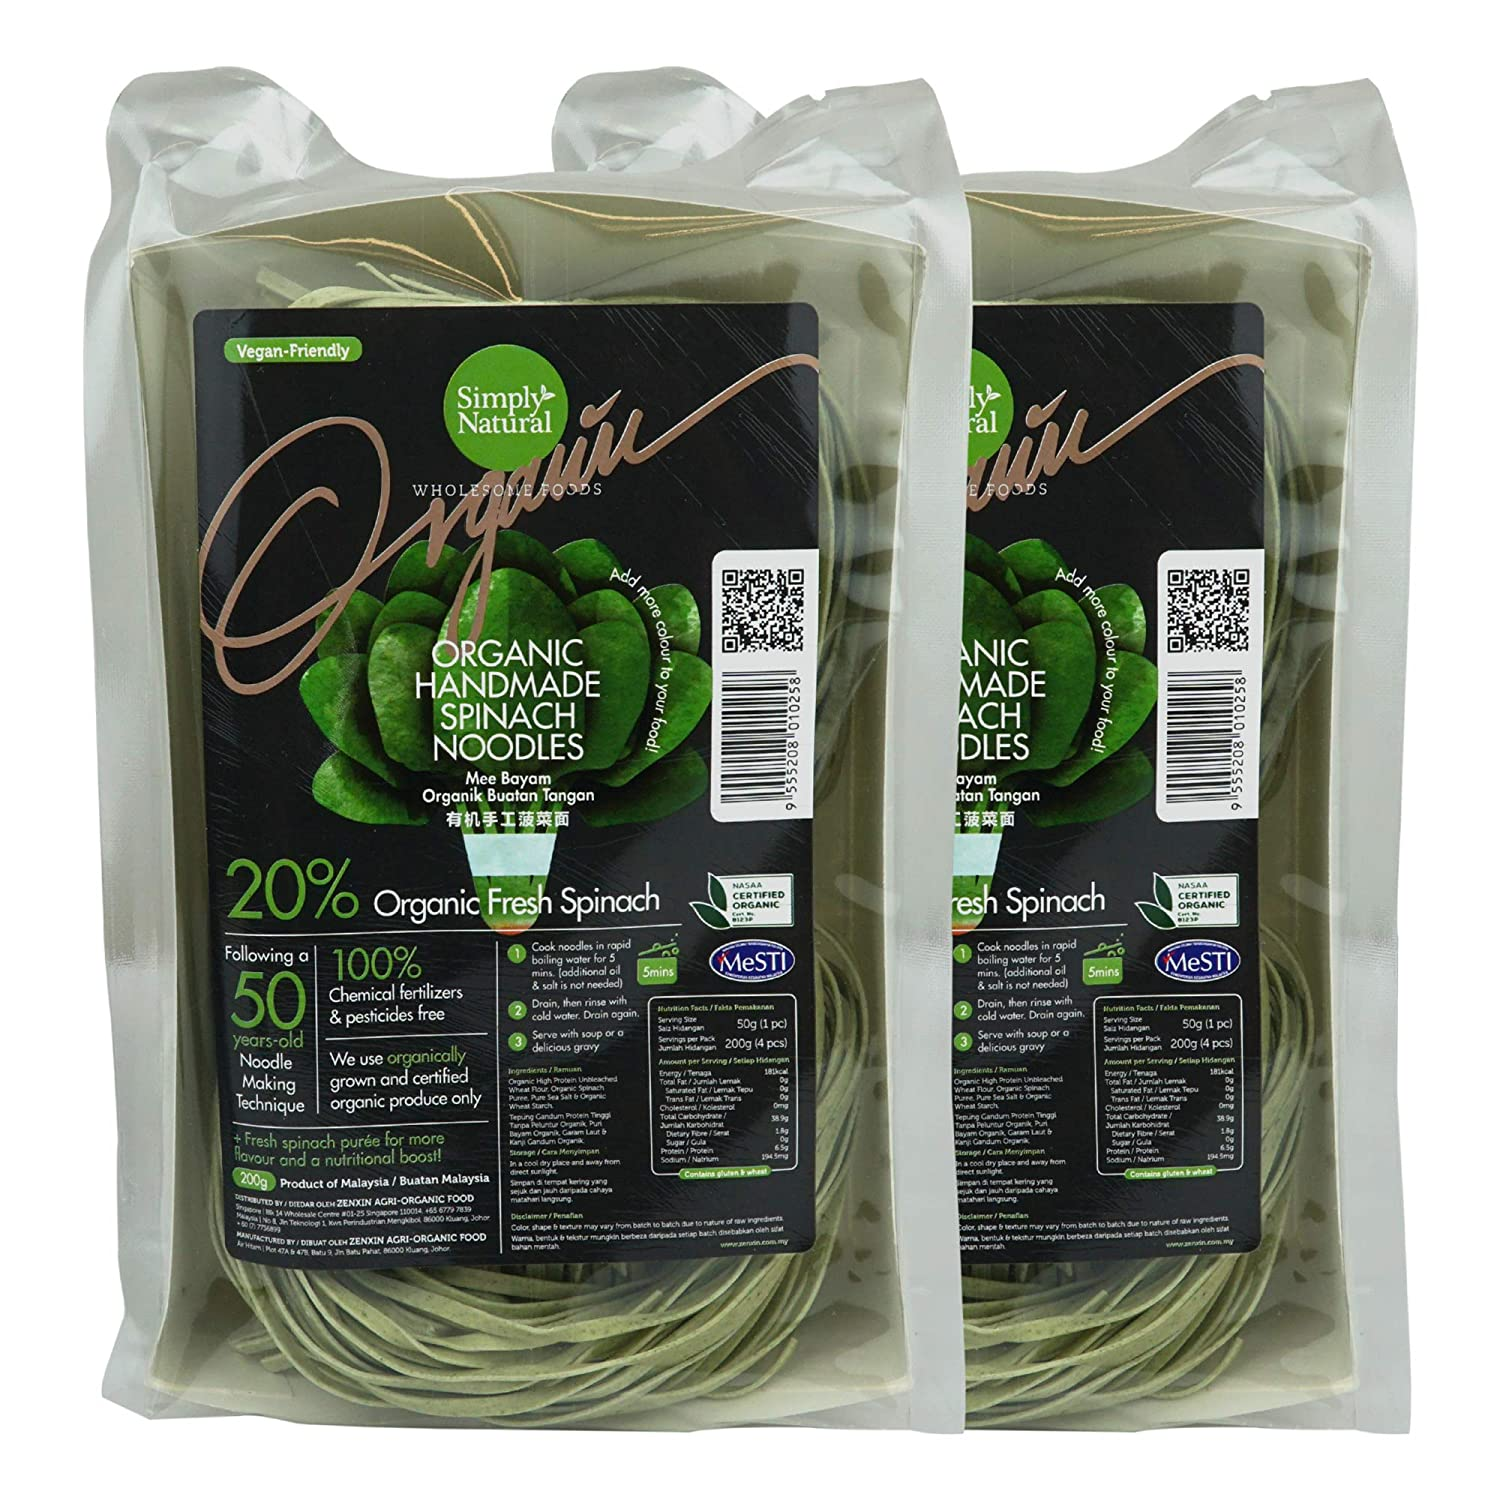 Zenxin Simply Natural Spinach Noodle, Pack of 2 for 8 servings Use of 20% Spinach Puree , Vegan, GMO Free, Handmade